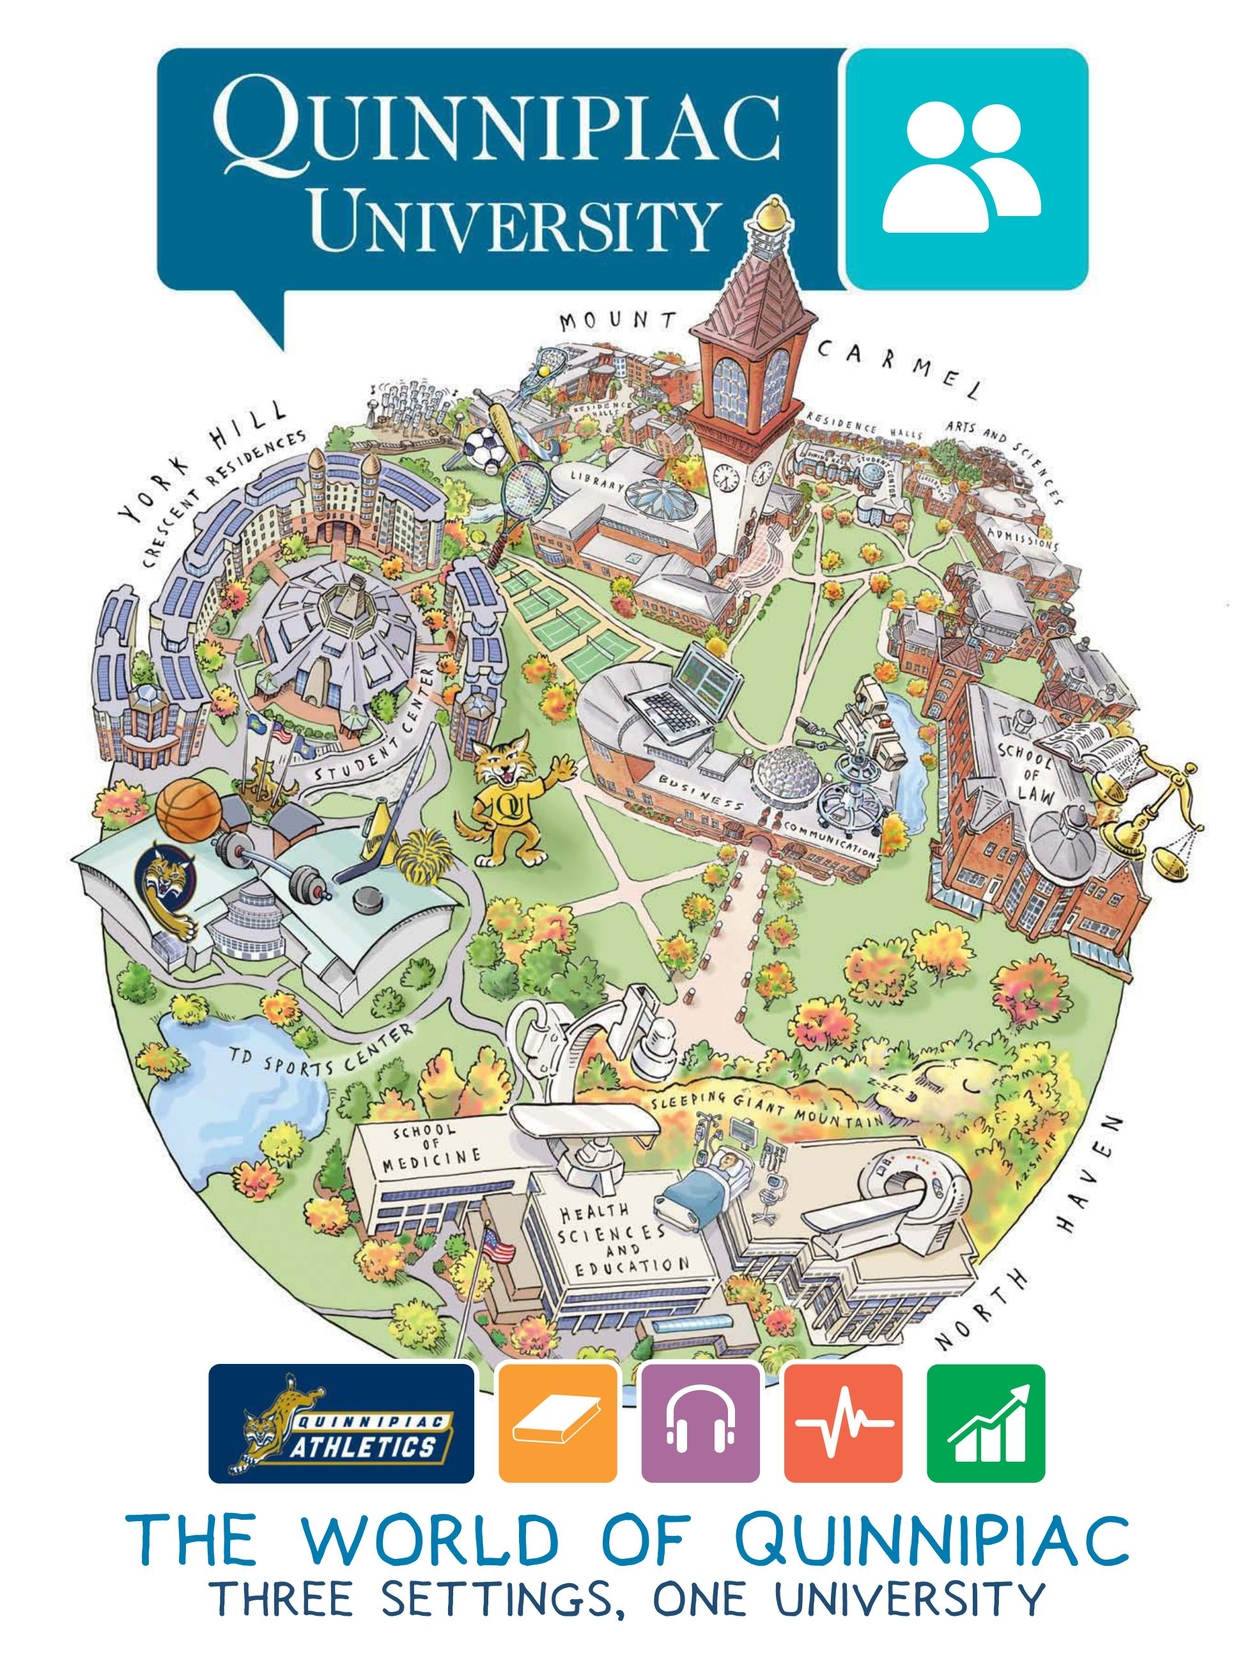 Quinnipiac University VIEWBOOK 2010 on